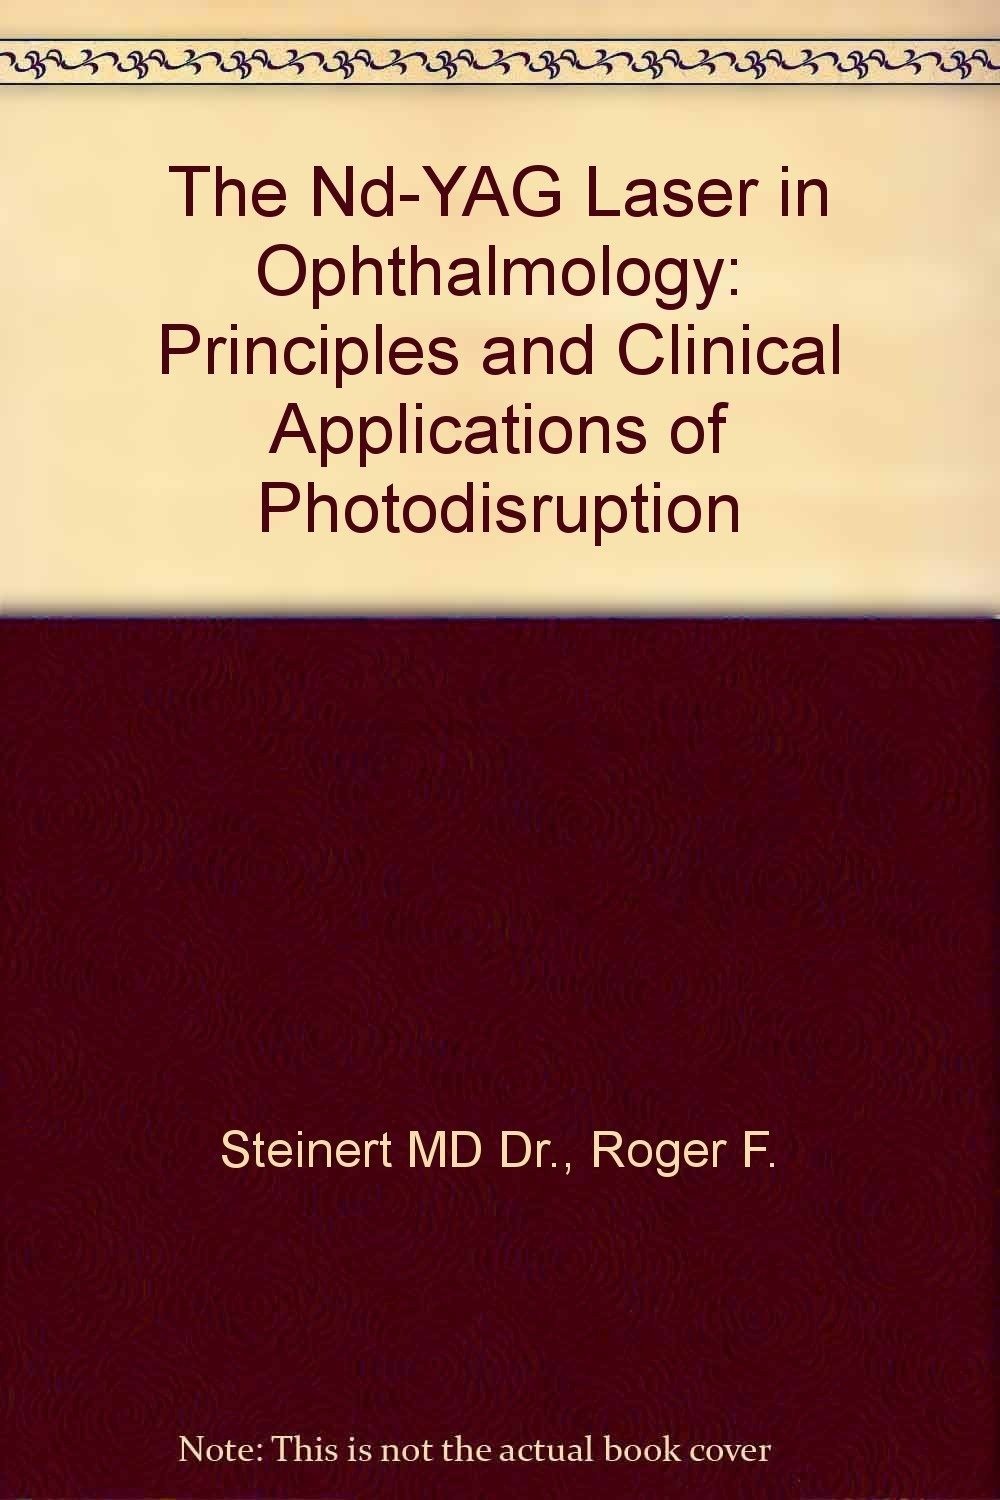 The Nd-YAG Laser in Ophthalmology: Principles and Clinical Applications of Photodisruption